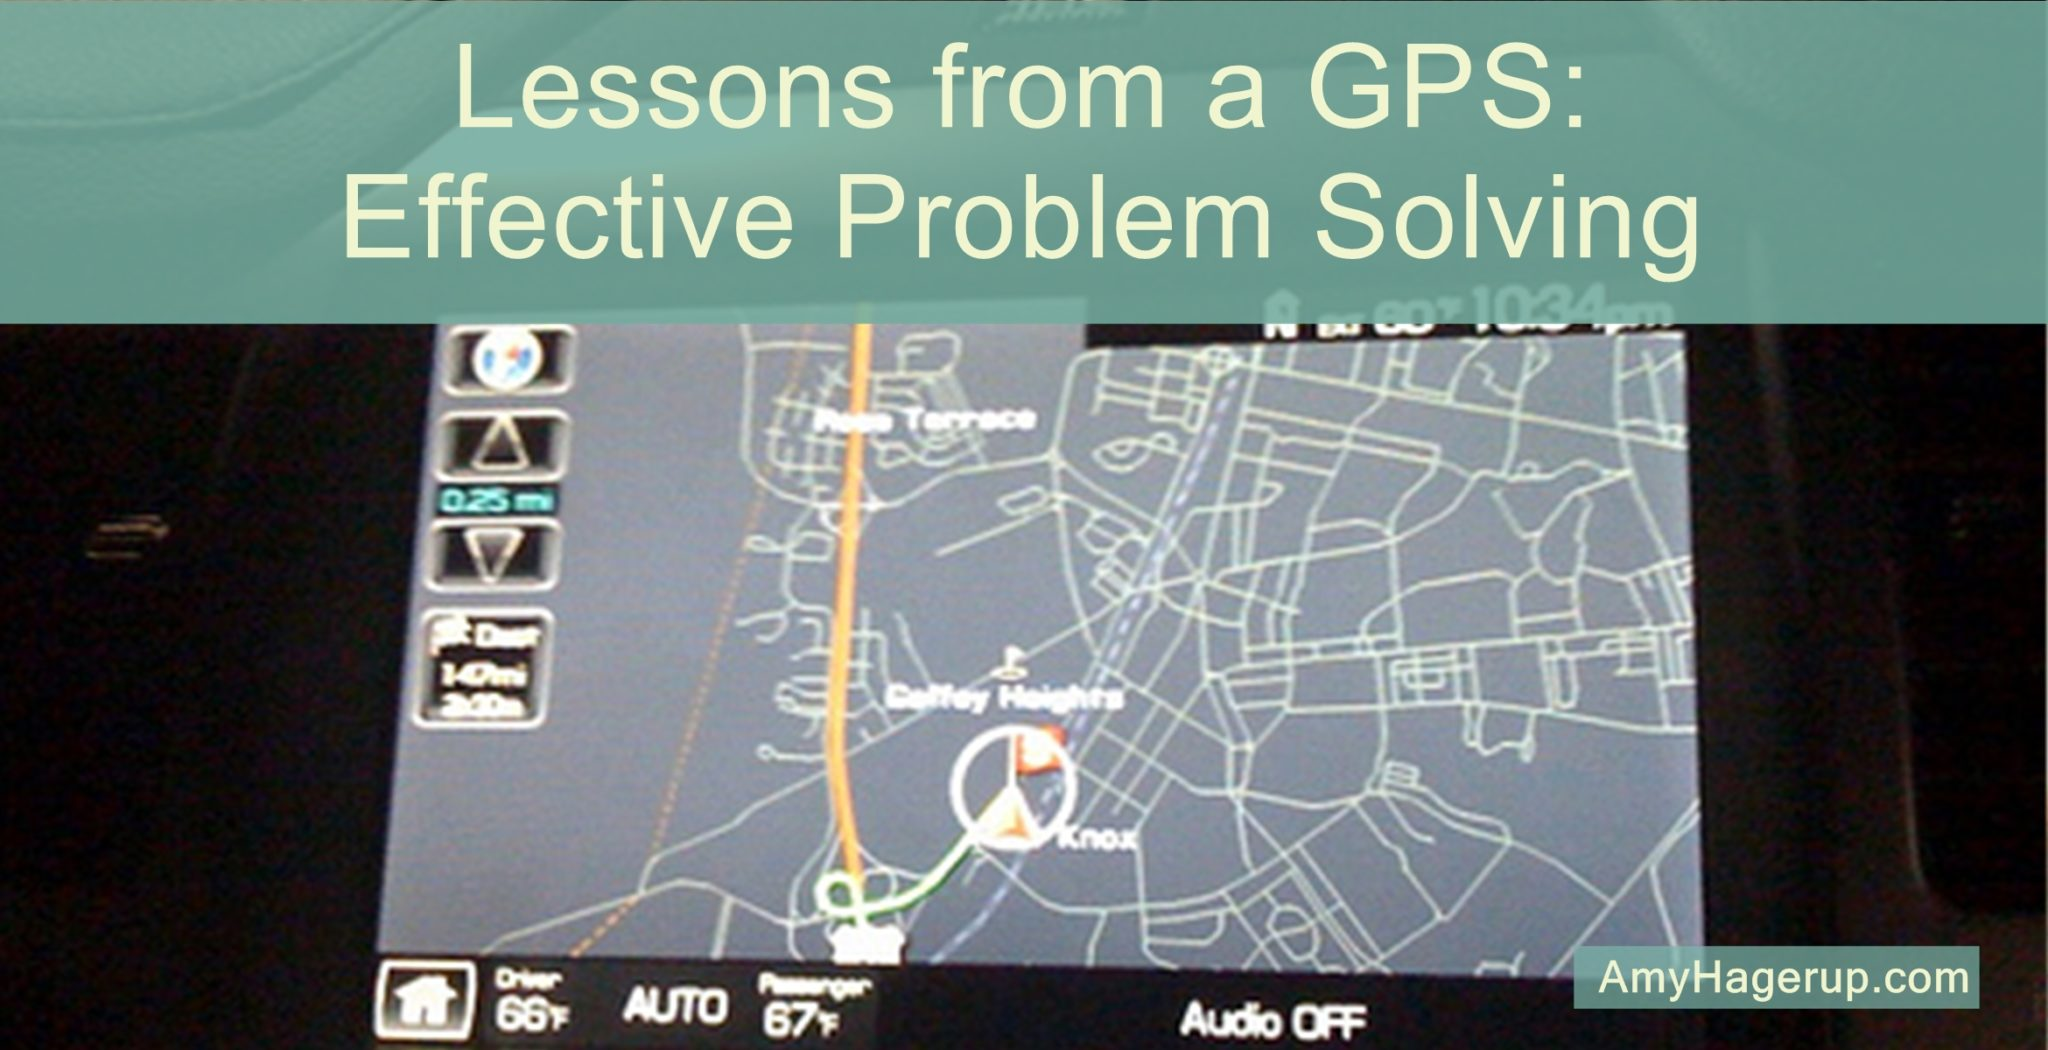 Here are some lessons learned on effective problem solving as learned from a GPS navigation system.